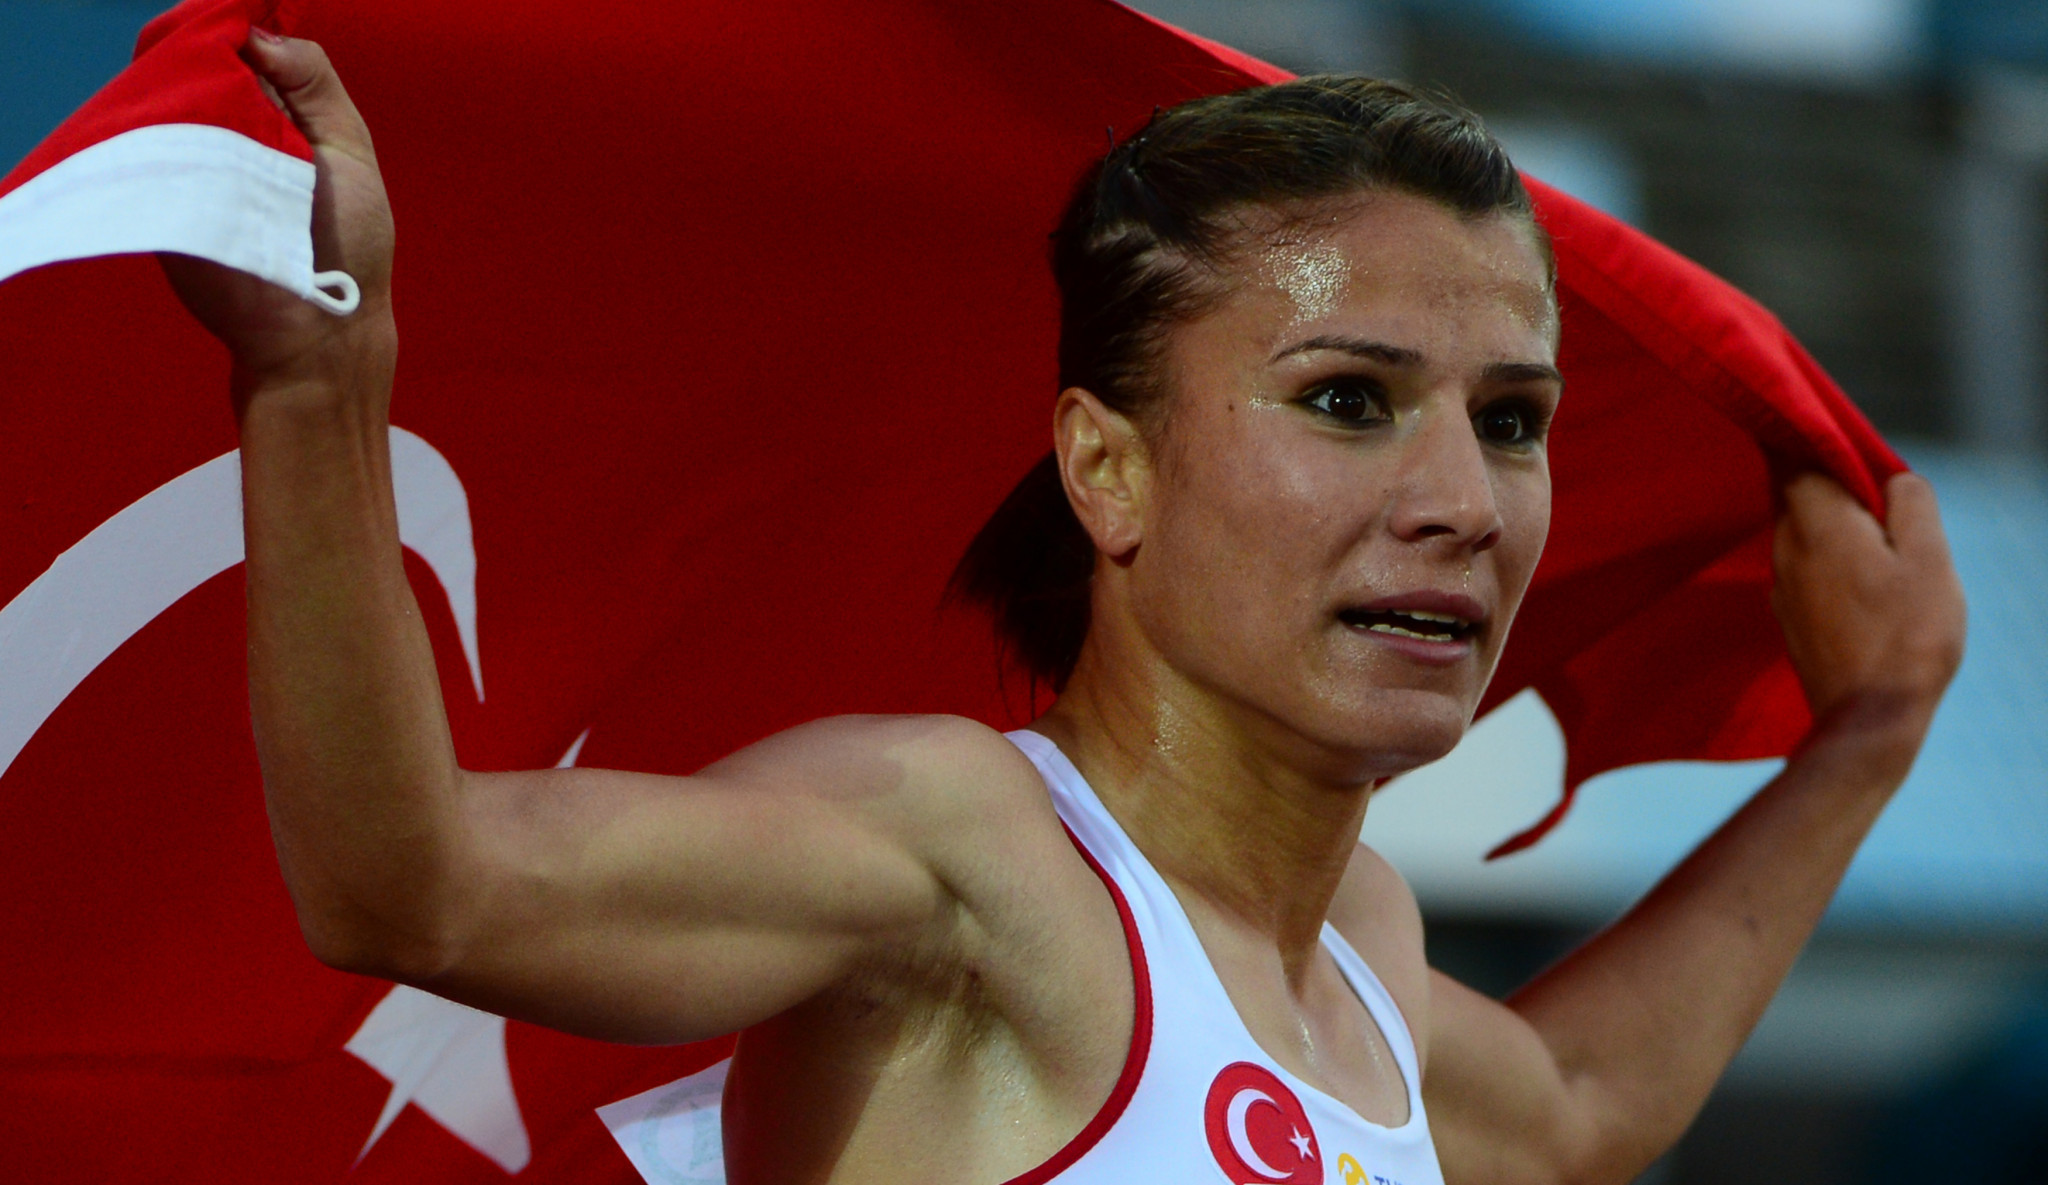 Turkish athlete Mıngır found guilty of doping offence at London 2012